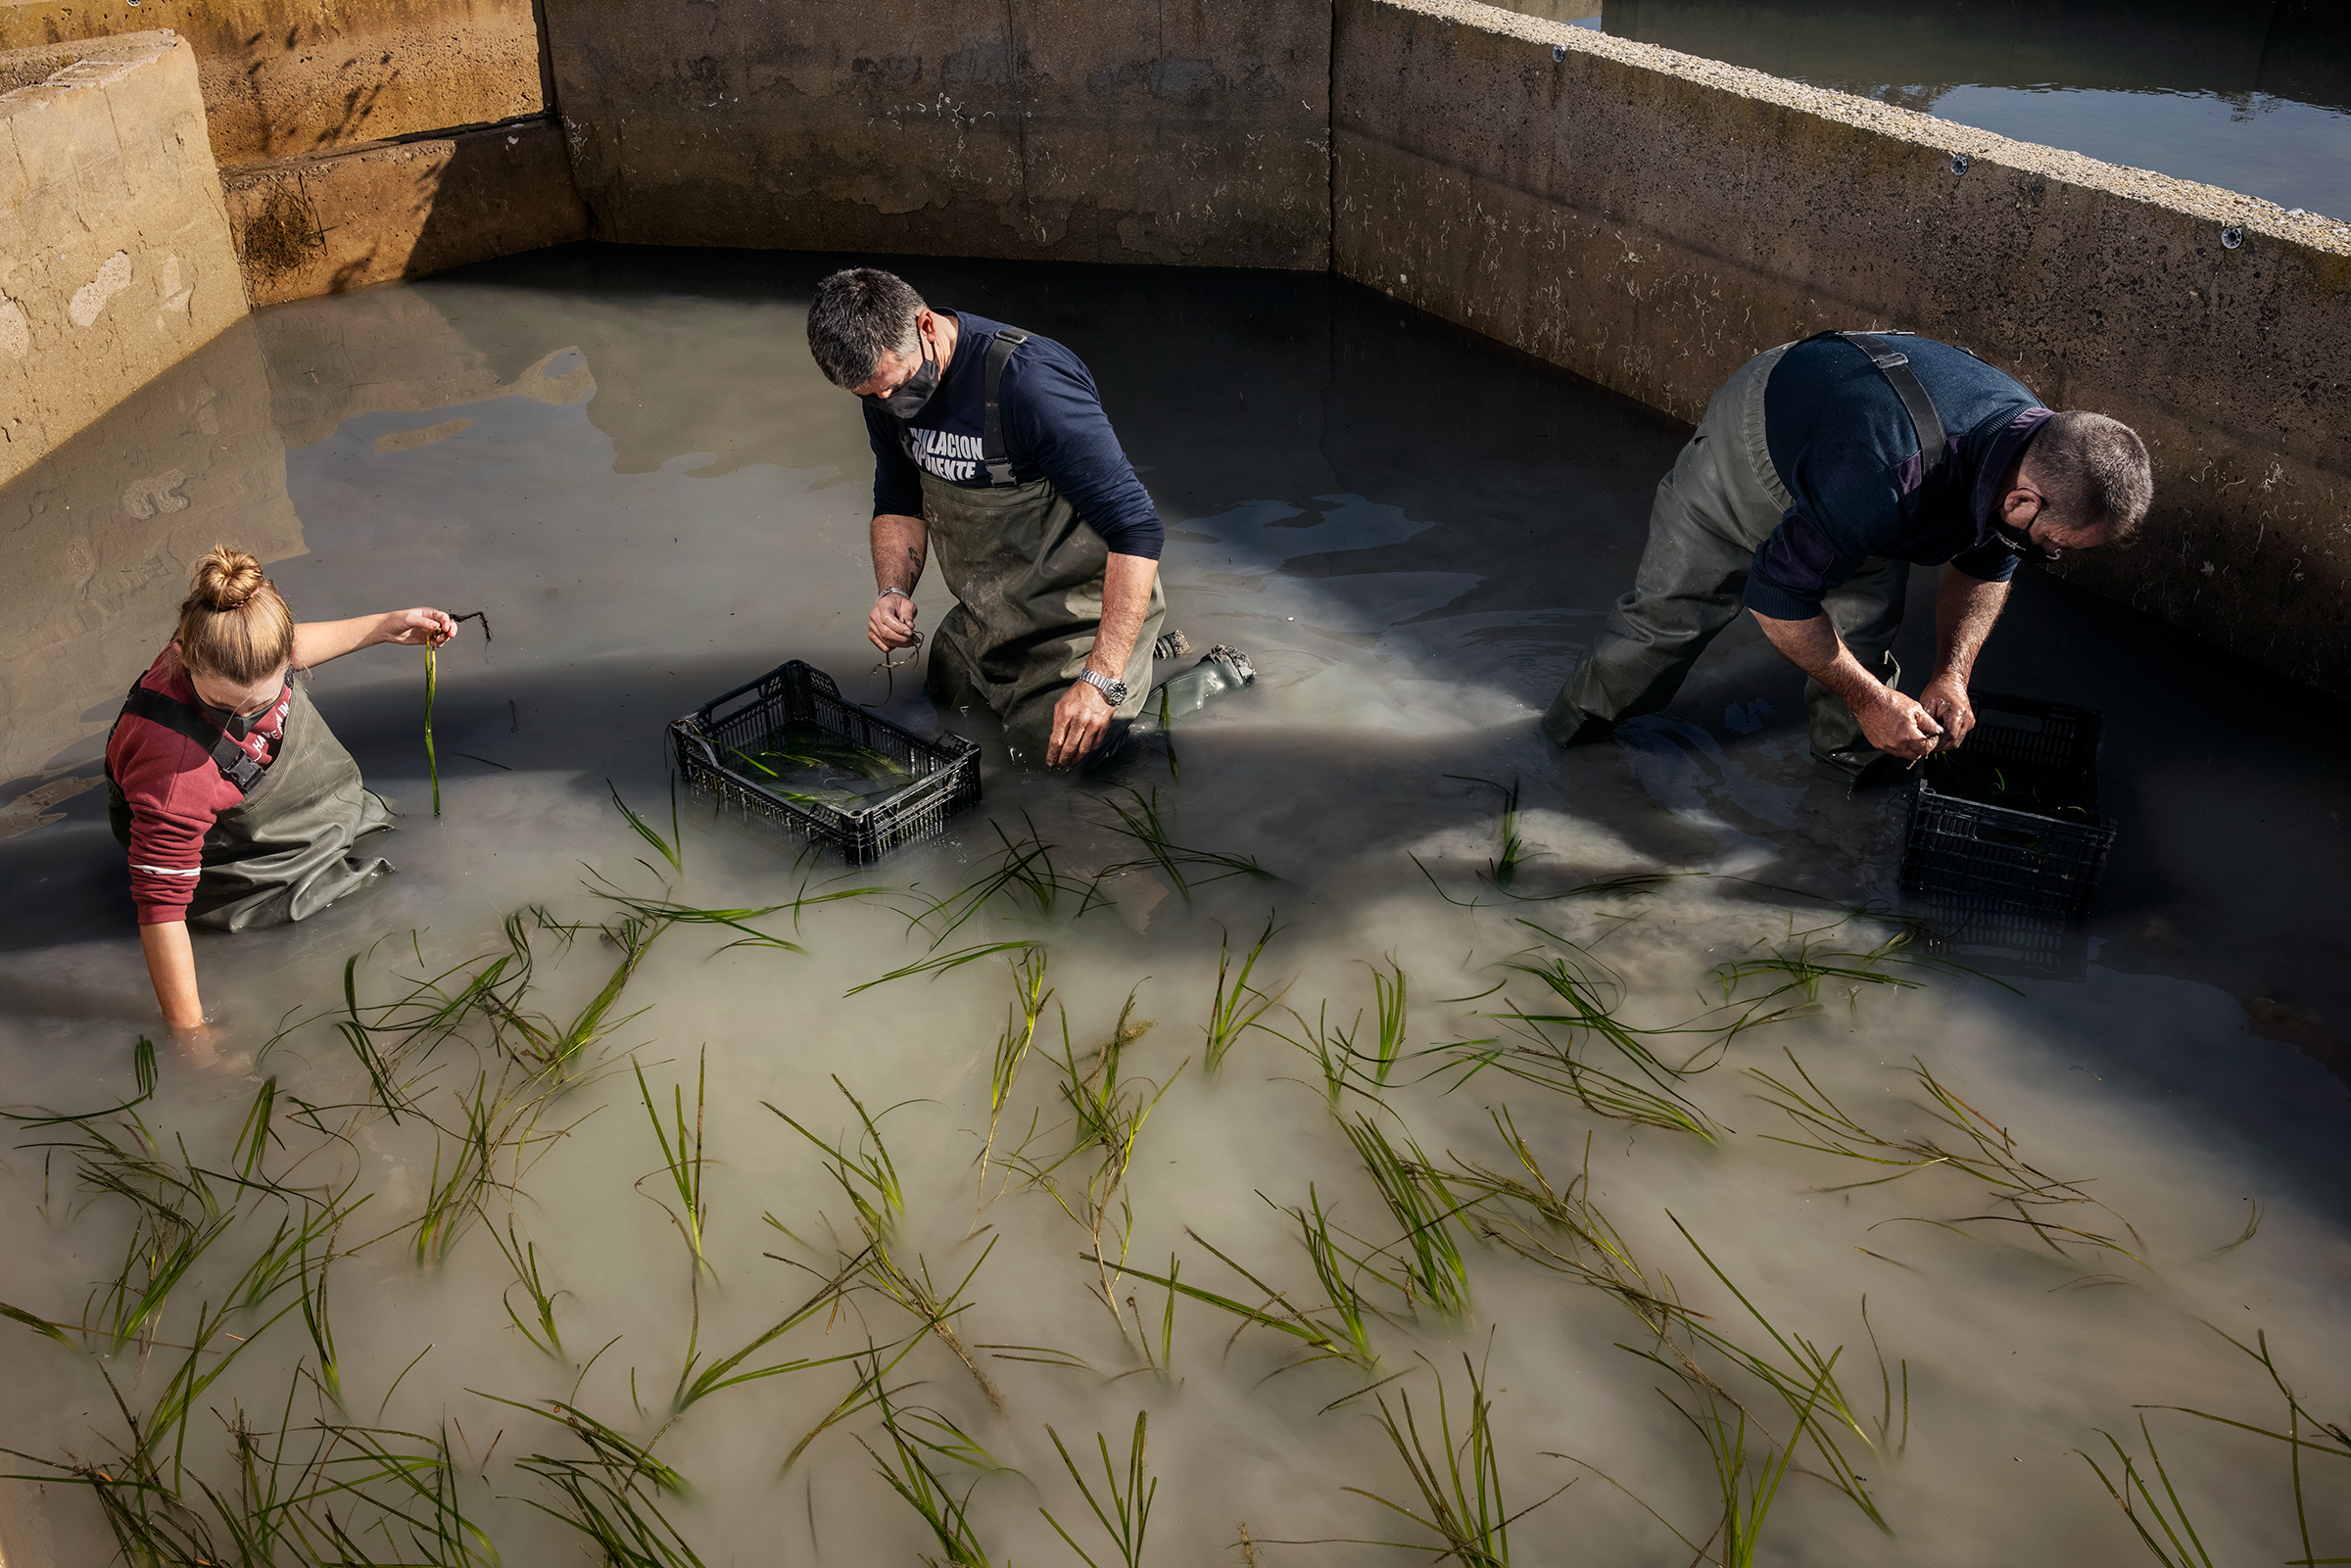 Juan Martín, center, of Aponiente works on the seagrass fields planted near León's restaurant